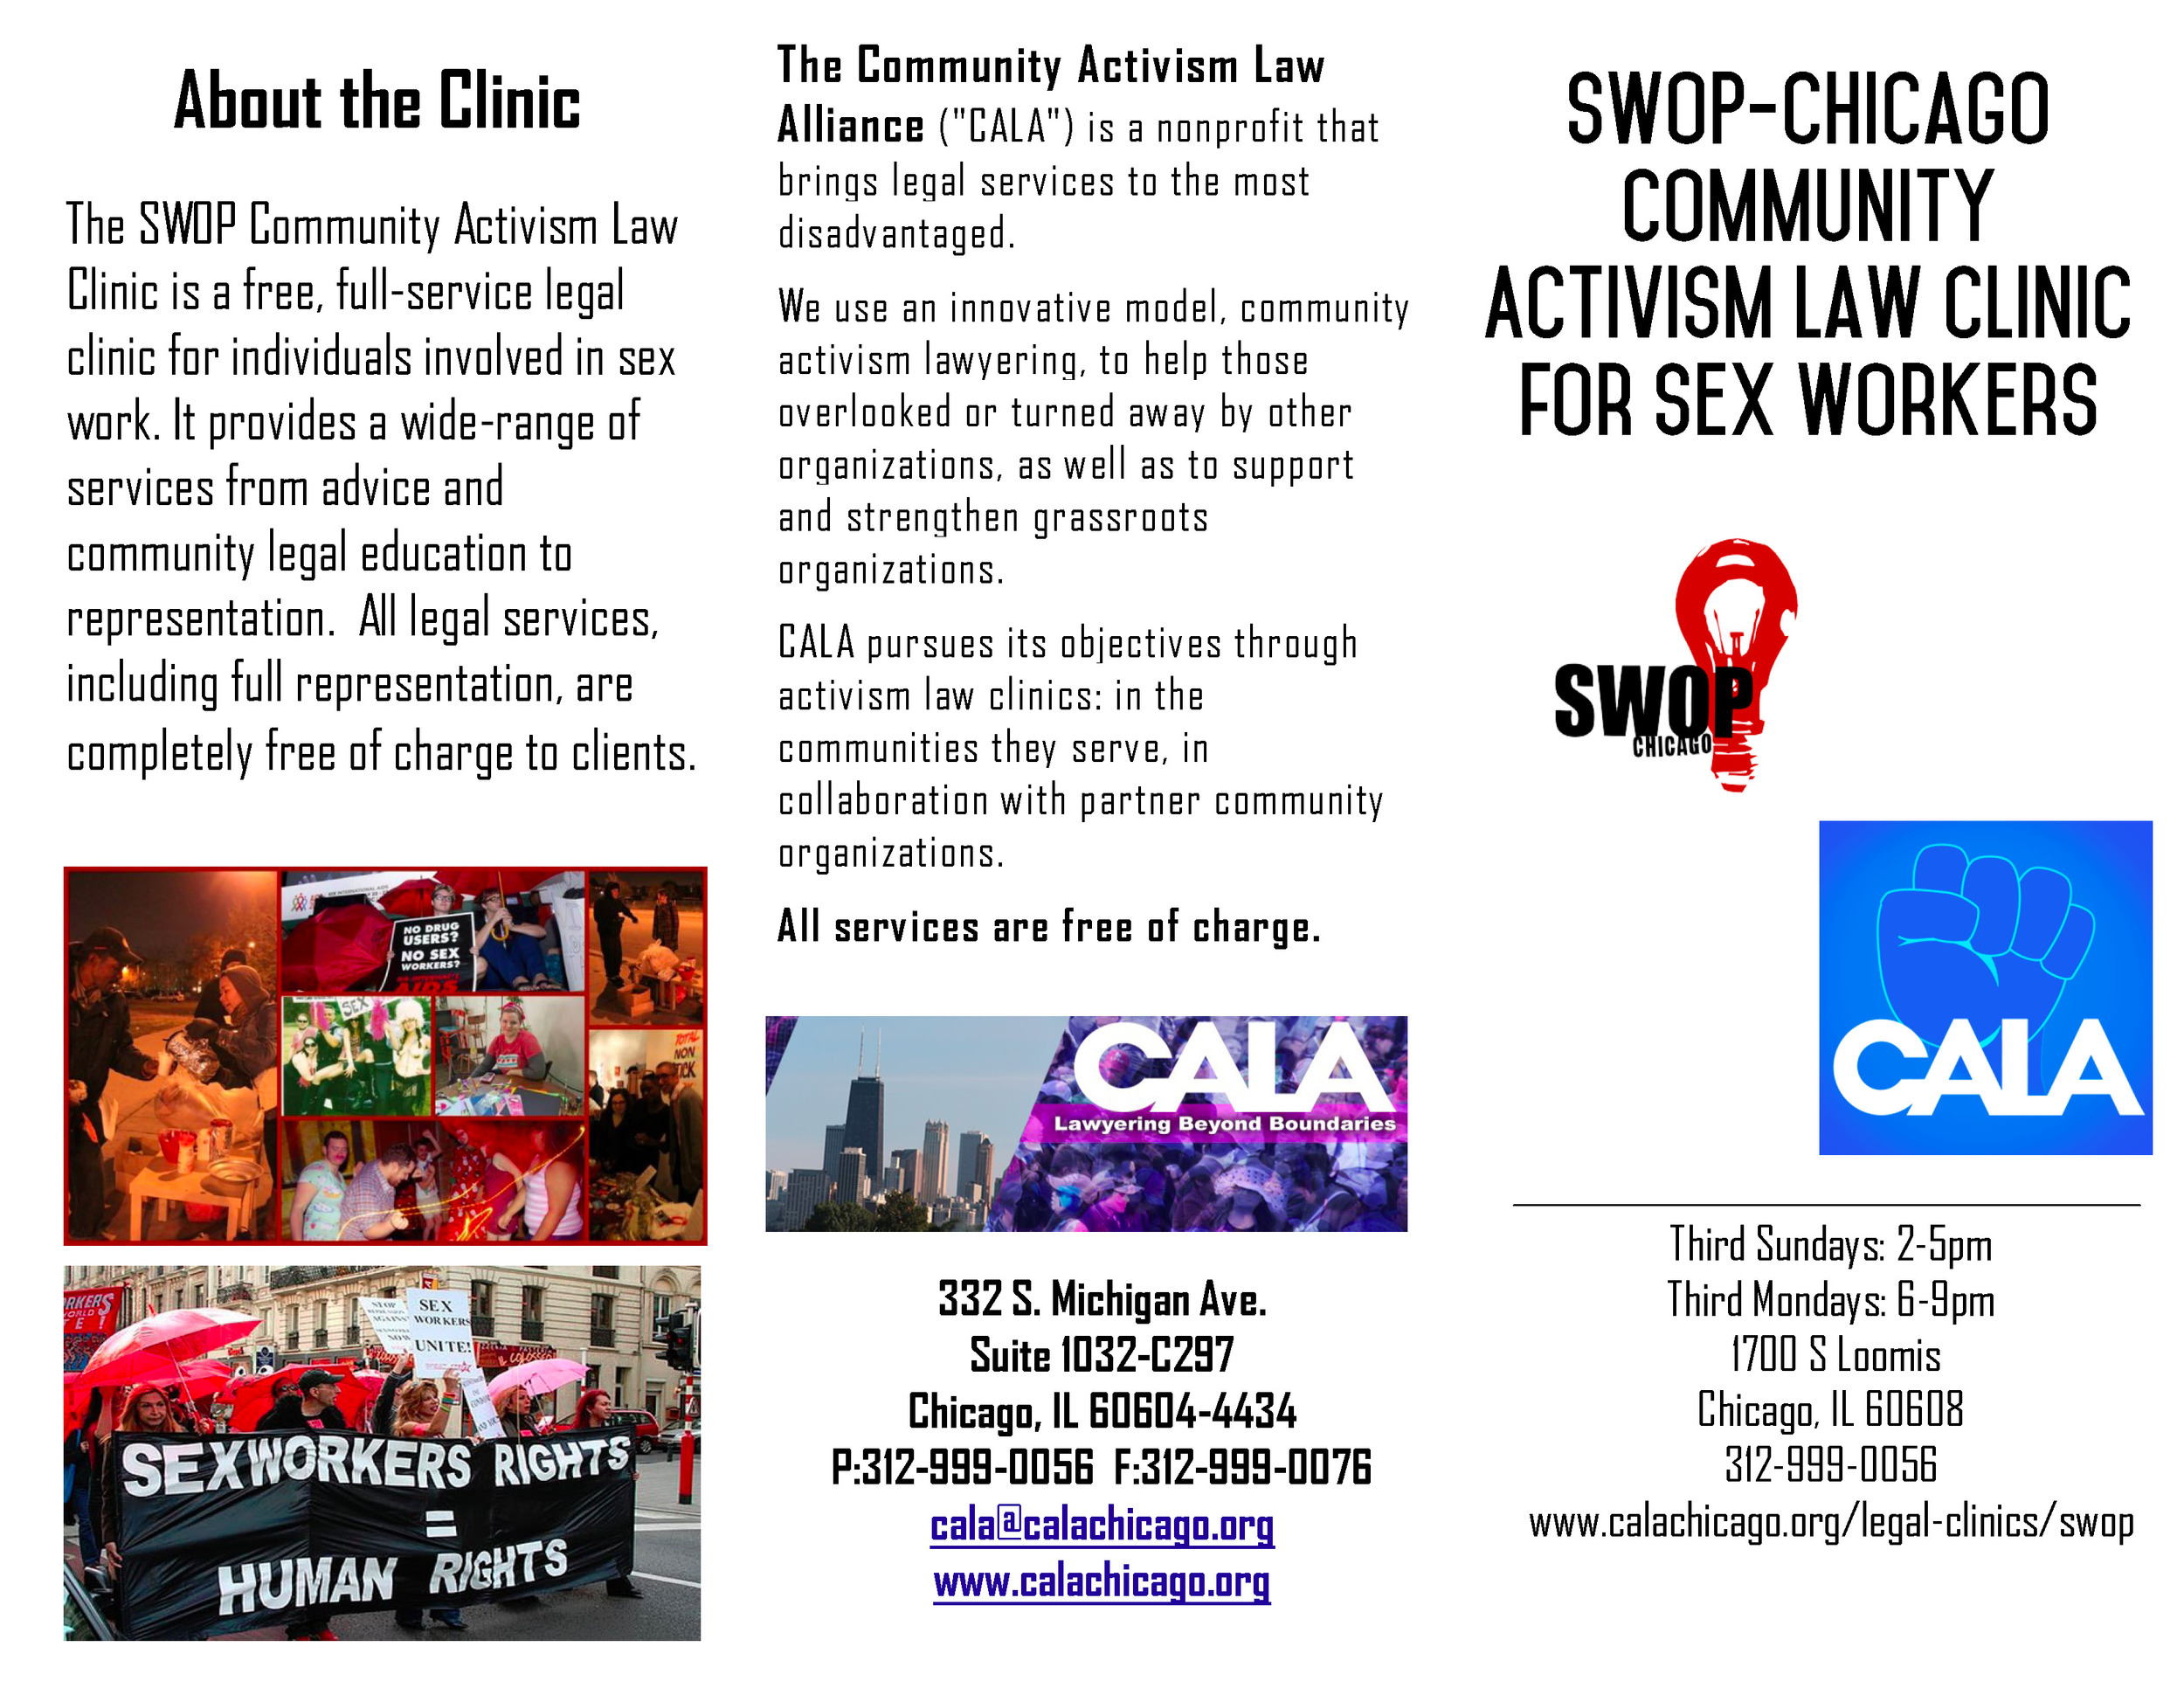 Initial Flyer (front page) for the SWOP Community Activism Law Clinic